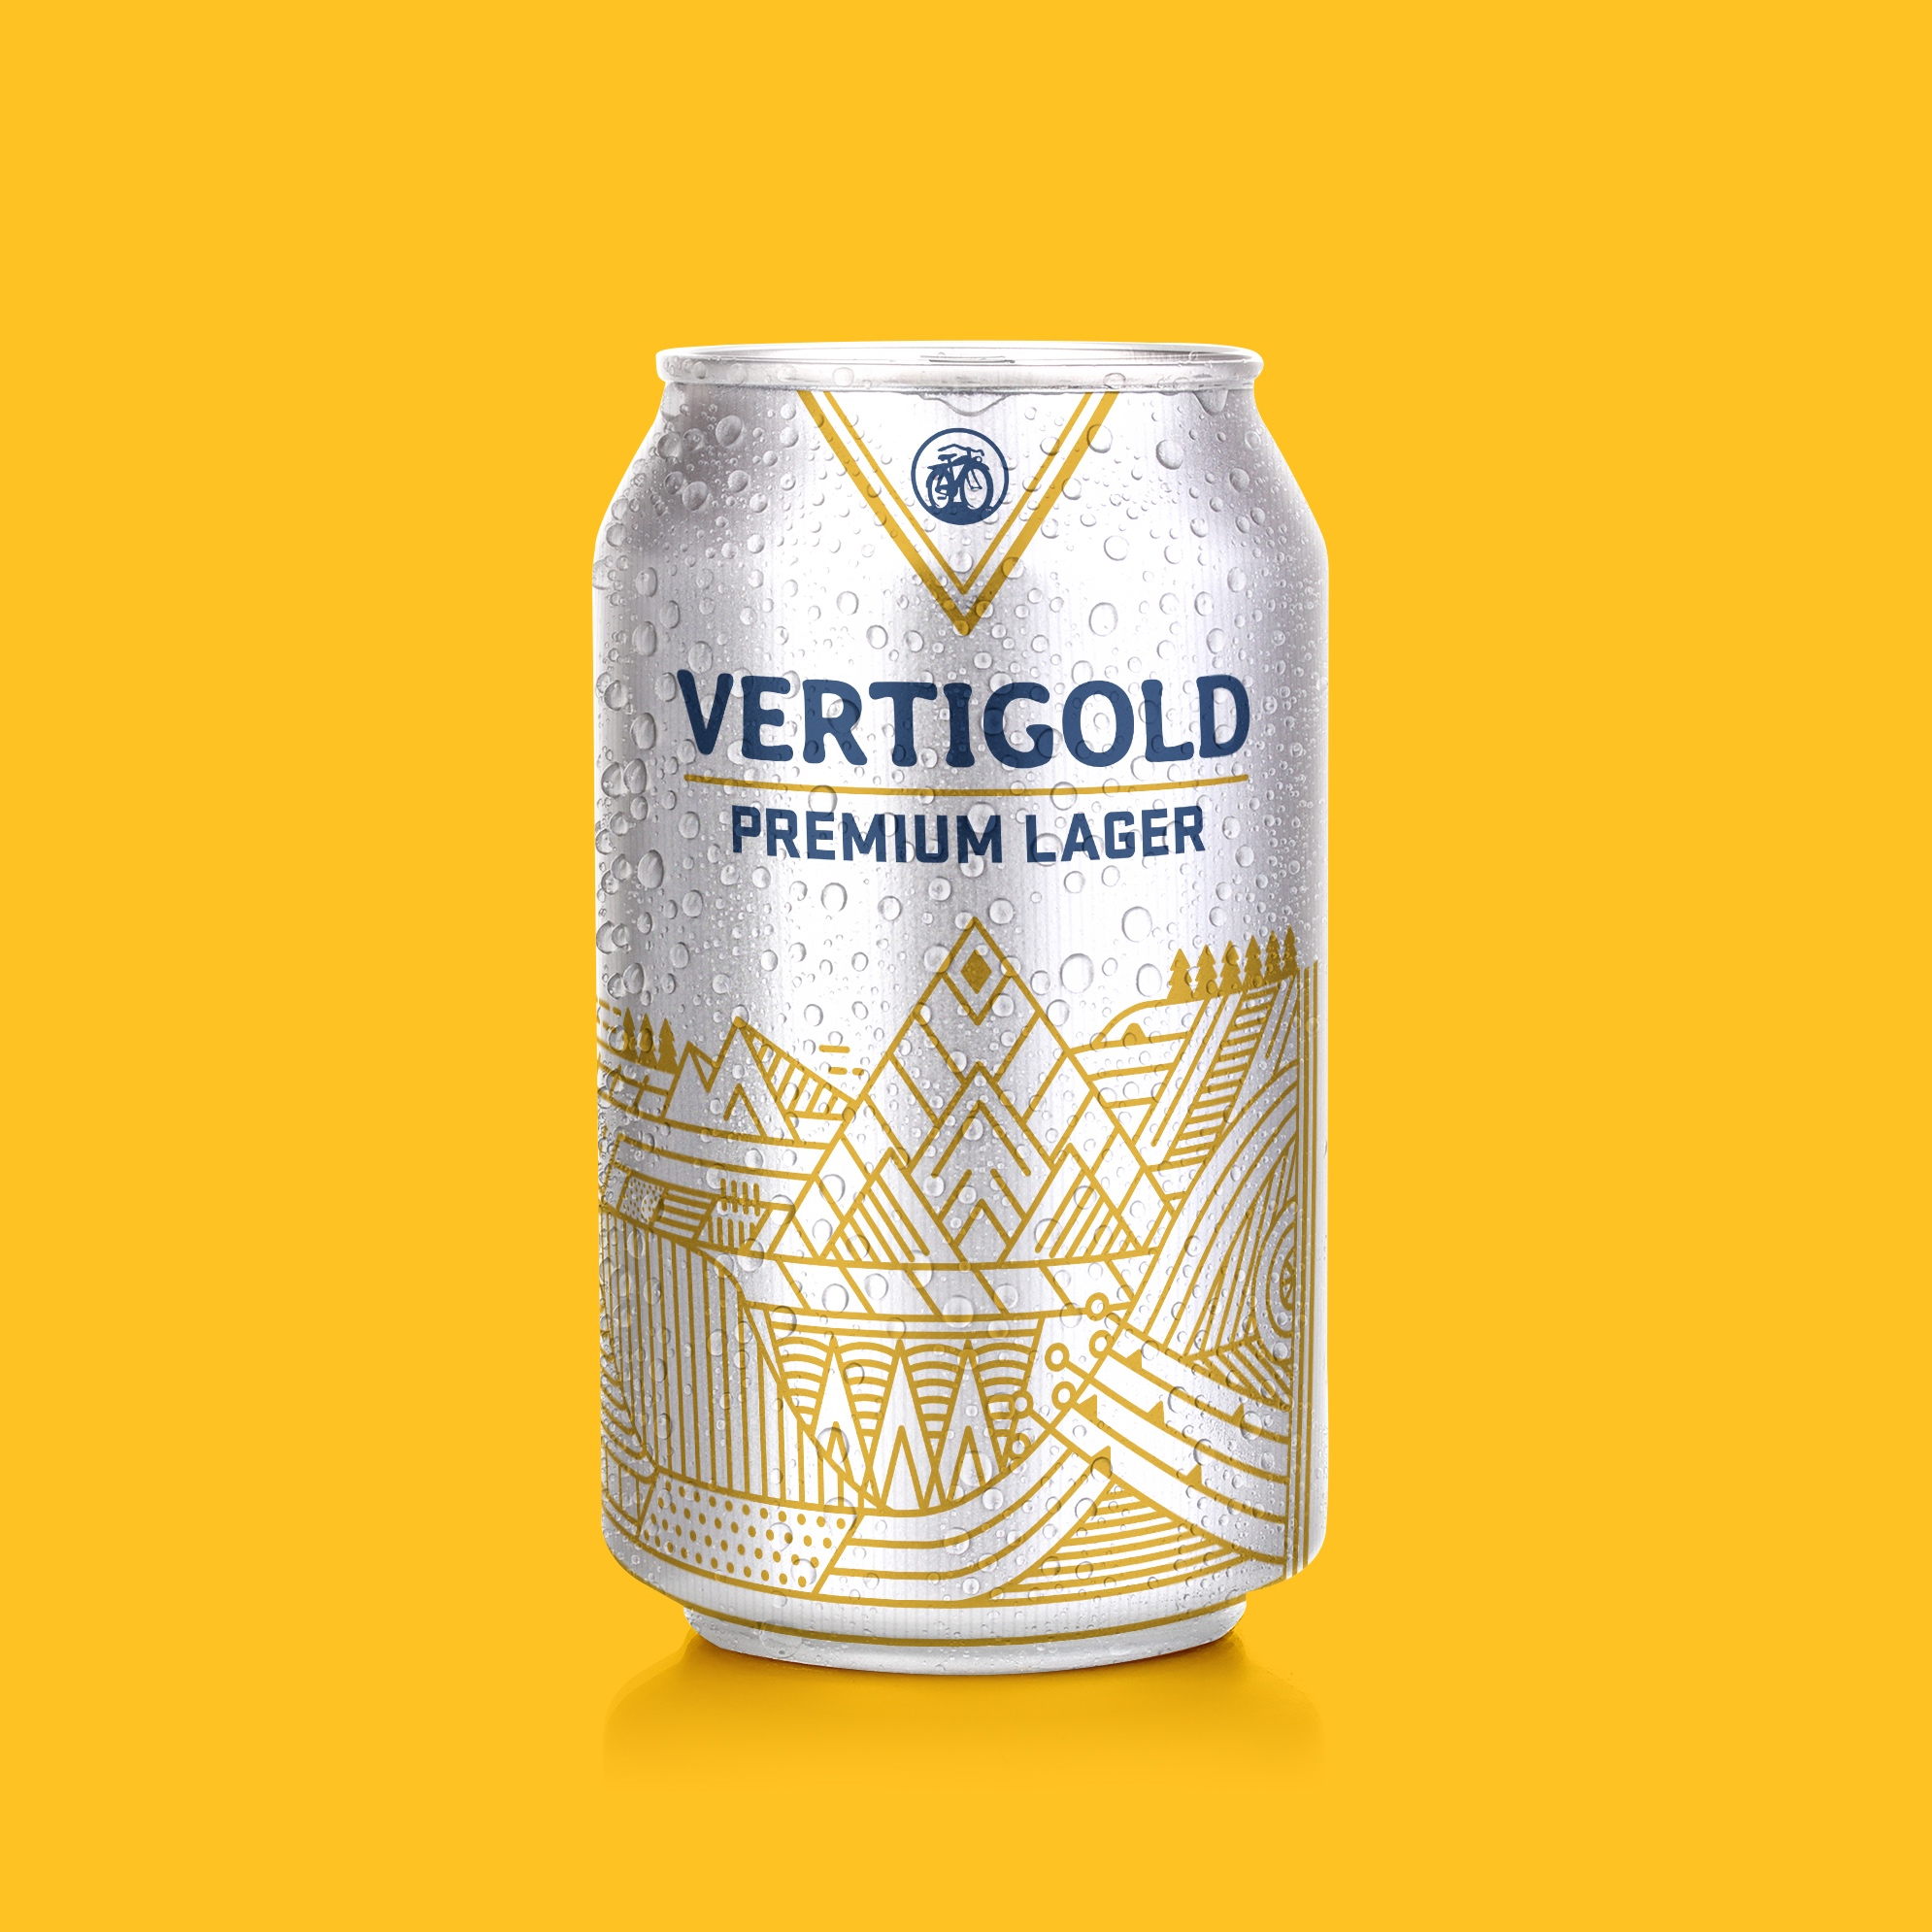 New Belgium Vertigold Original Concept which became Mountain Time